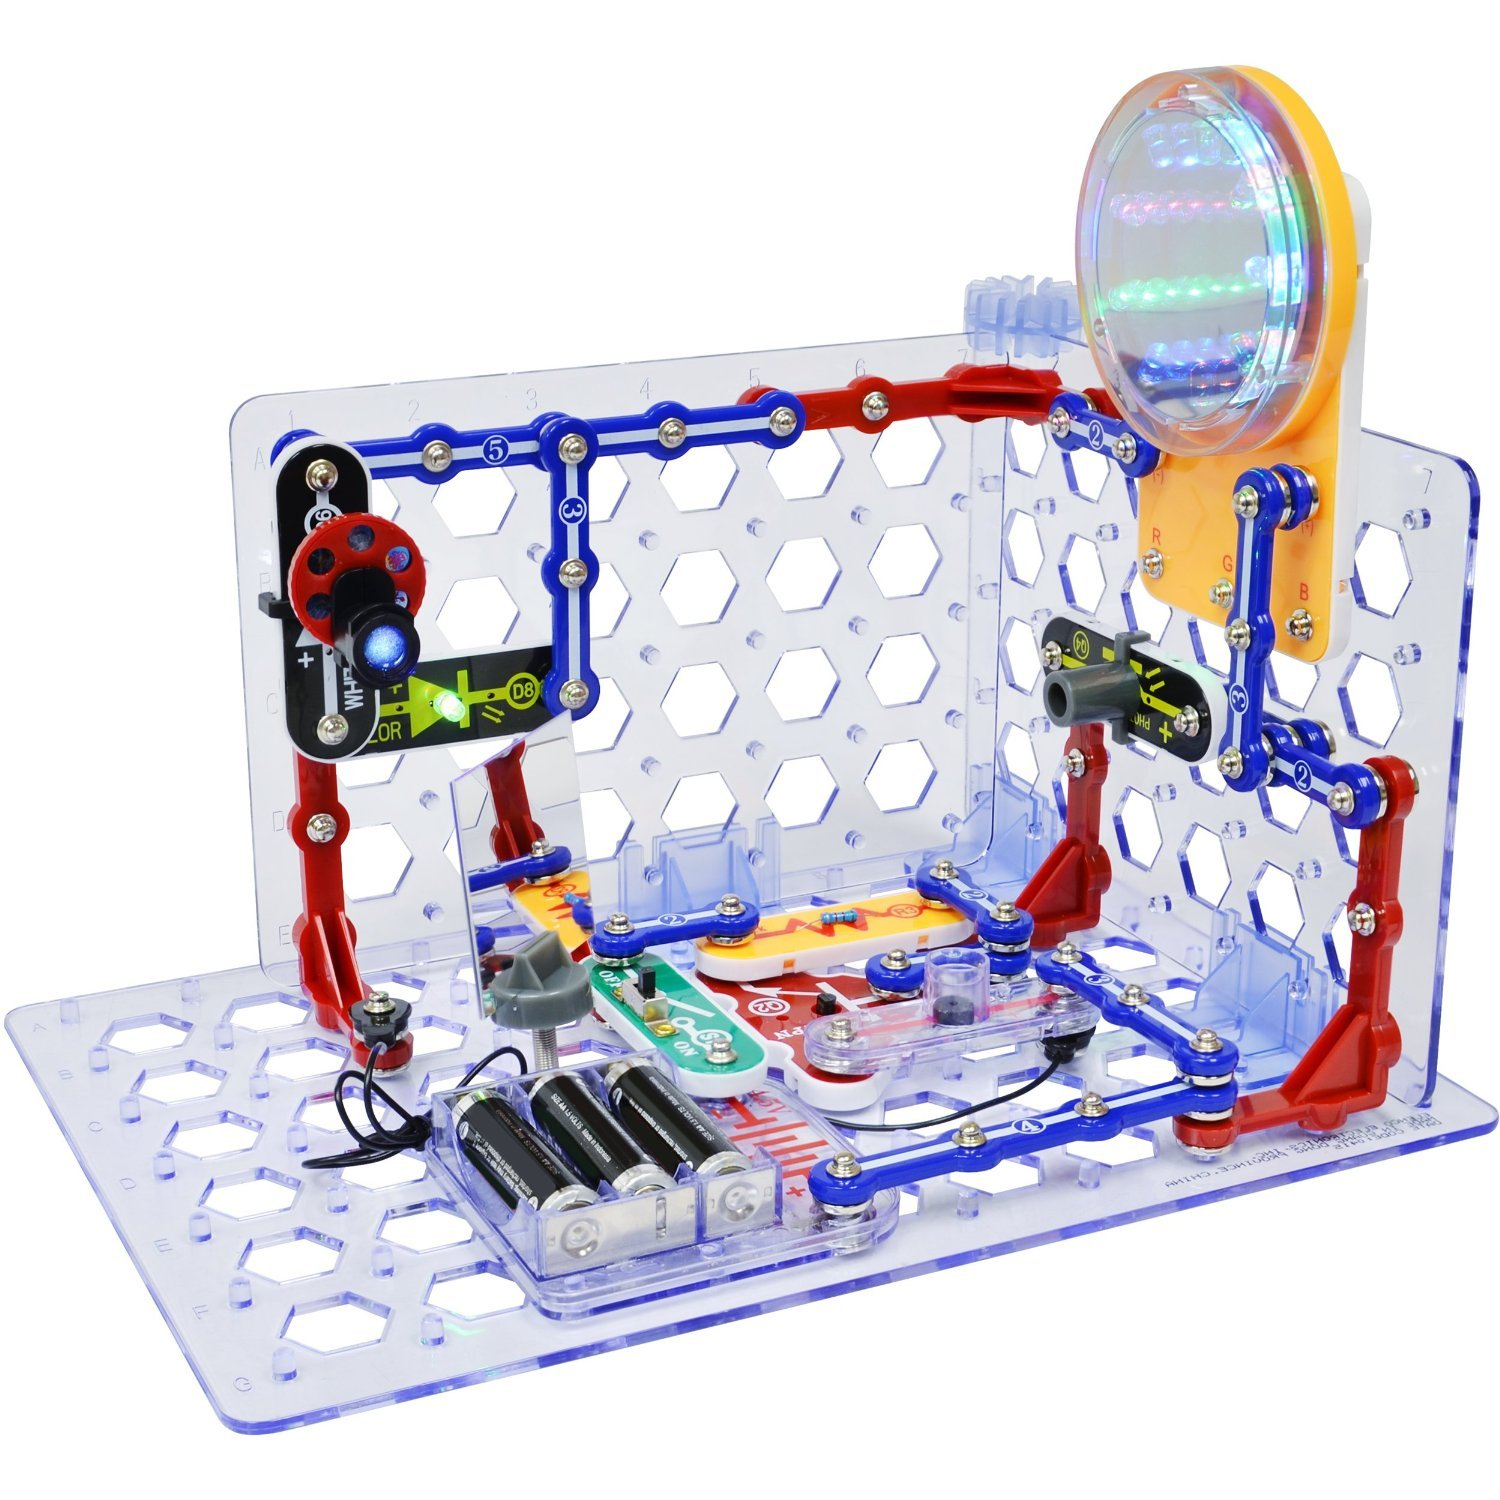 Snap Circuits 3d Illumination Electronics Discovery Snaptricity Kit Build 75 Projects Deluxe Stem With Battery Eliminator Toys Games